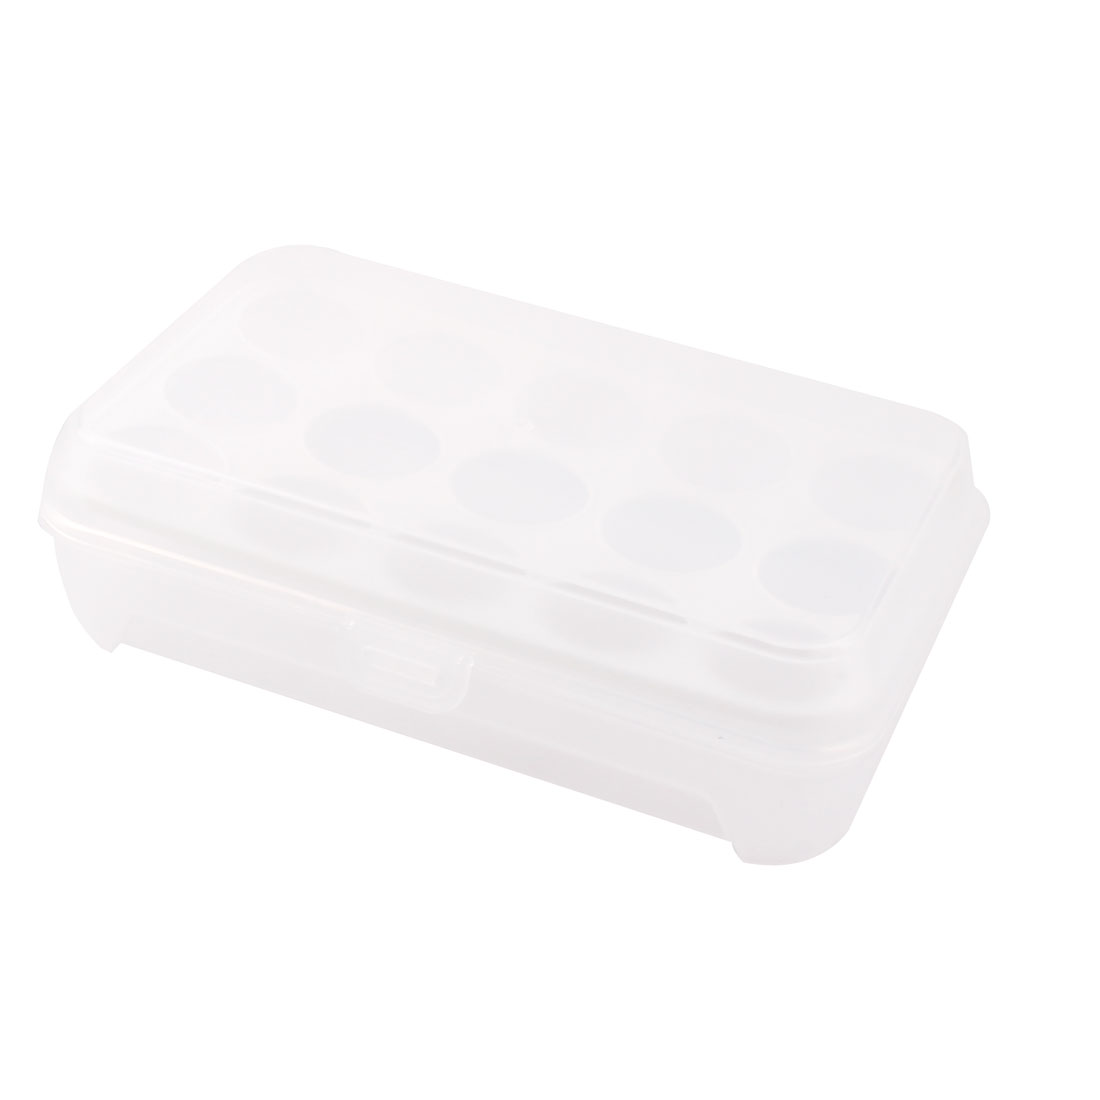 Refrigerator Plastic Rectangle Shaped 15 Slots Eggs Storage Container Box White